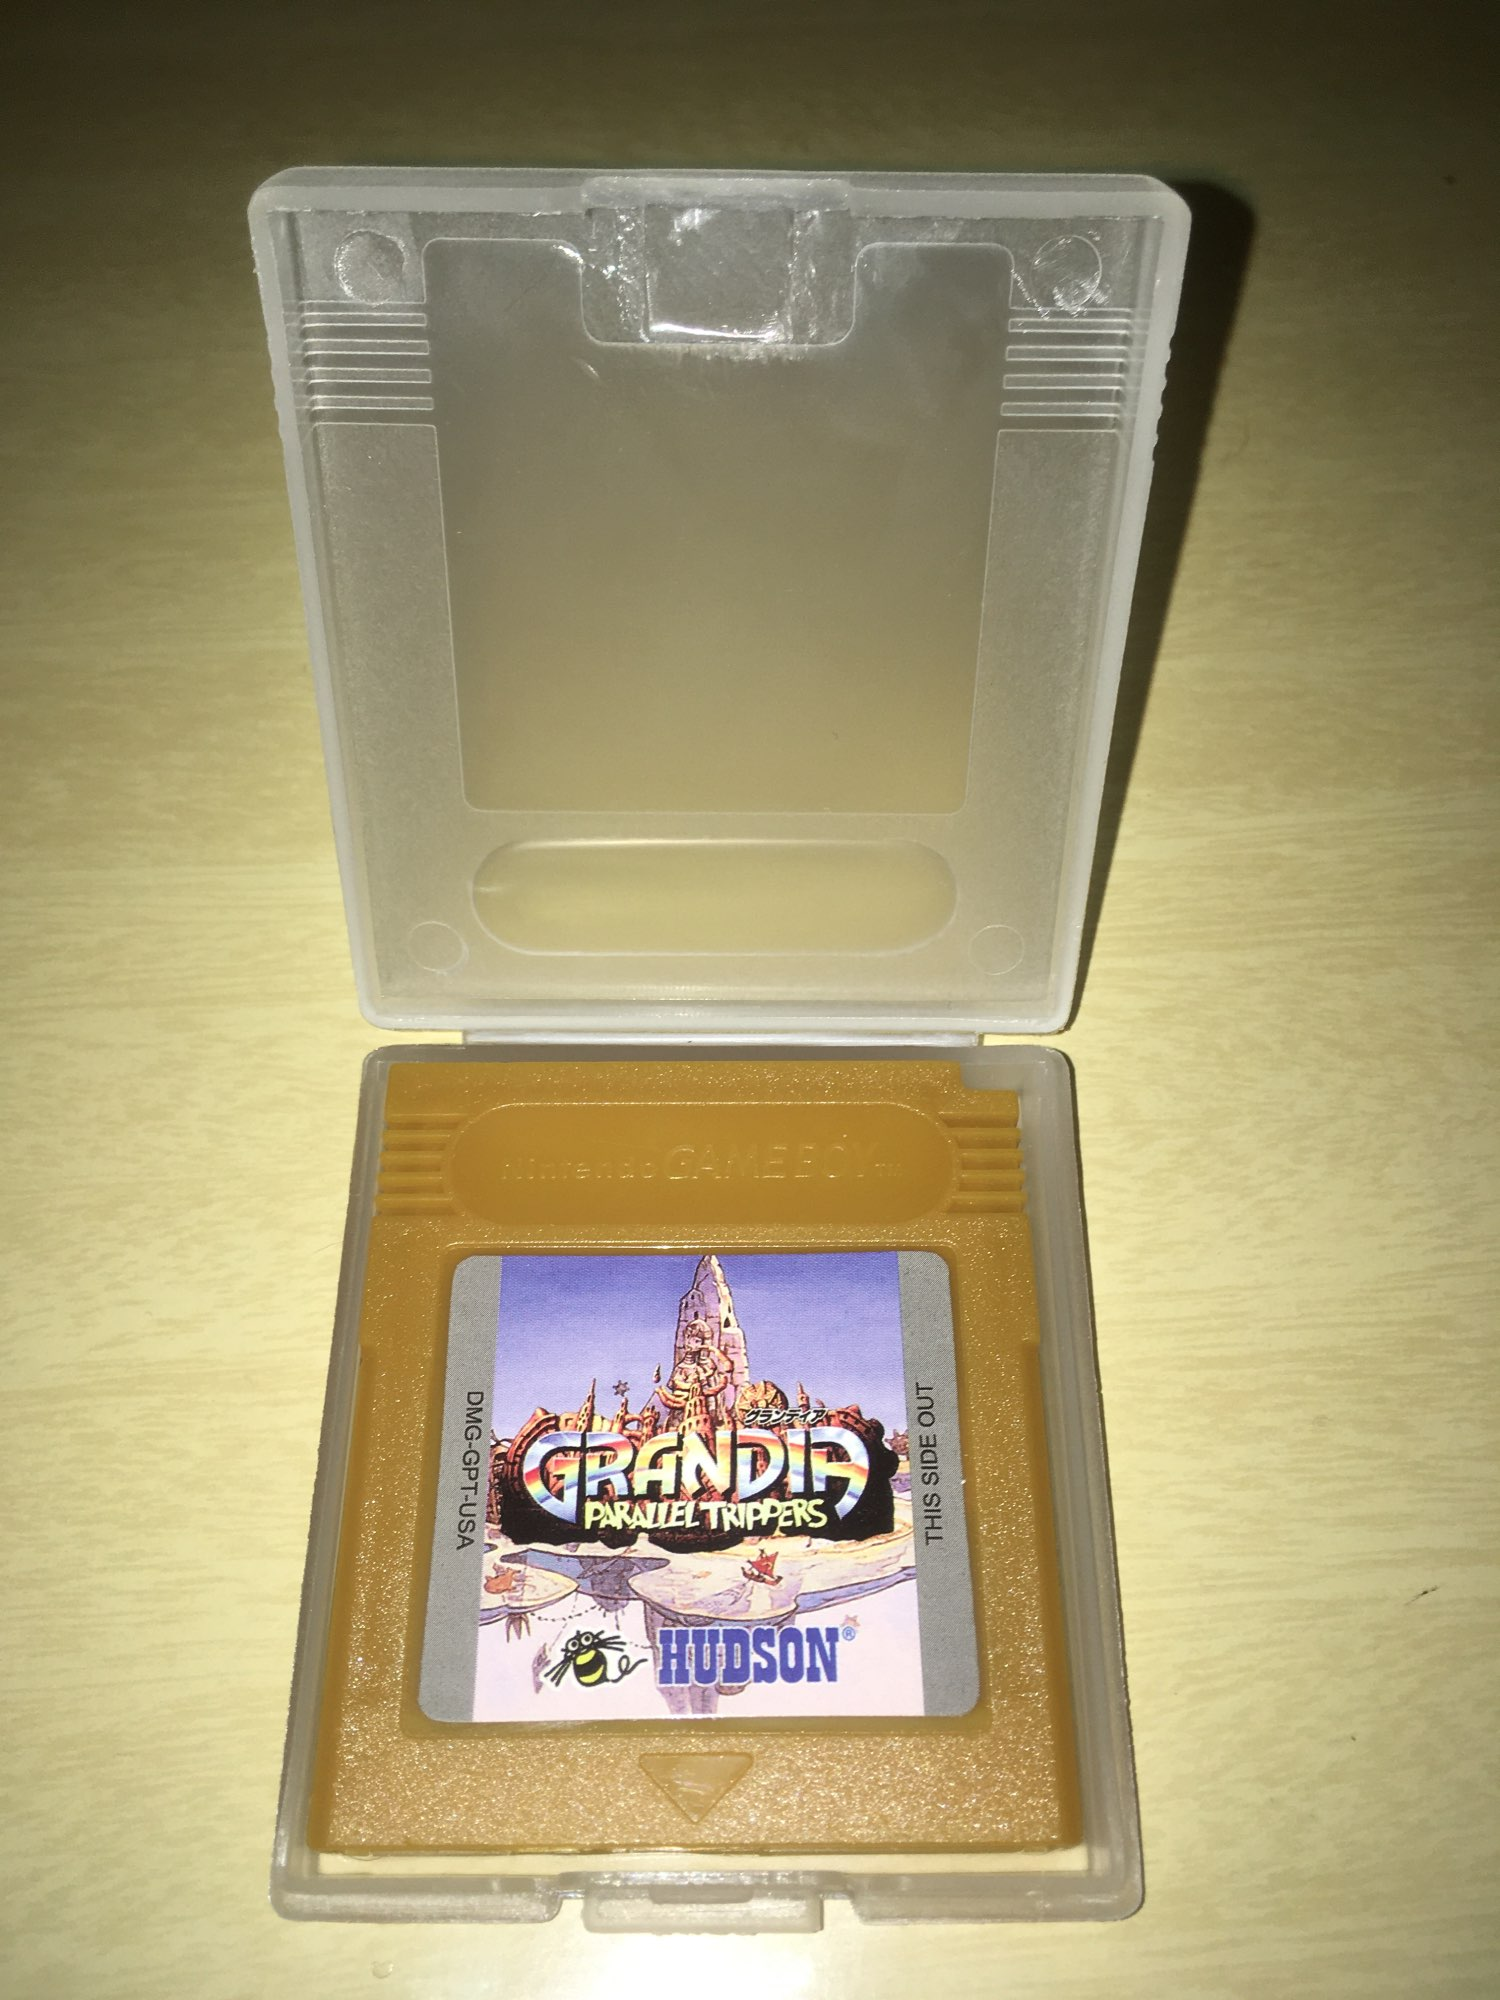 For Nintendo GBC Video Game Cartridge Console Card Grandia Parallel Trippers English Language Version photo review